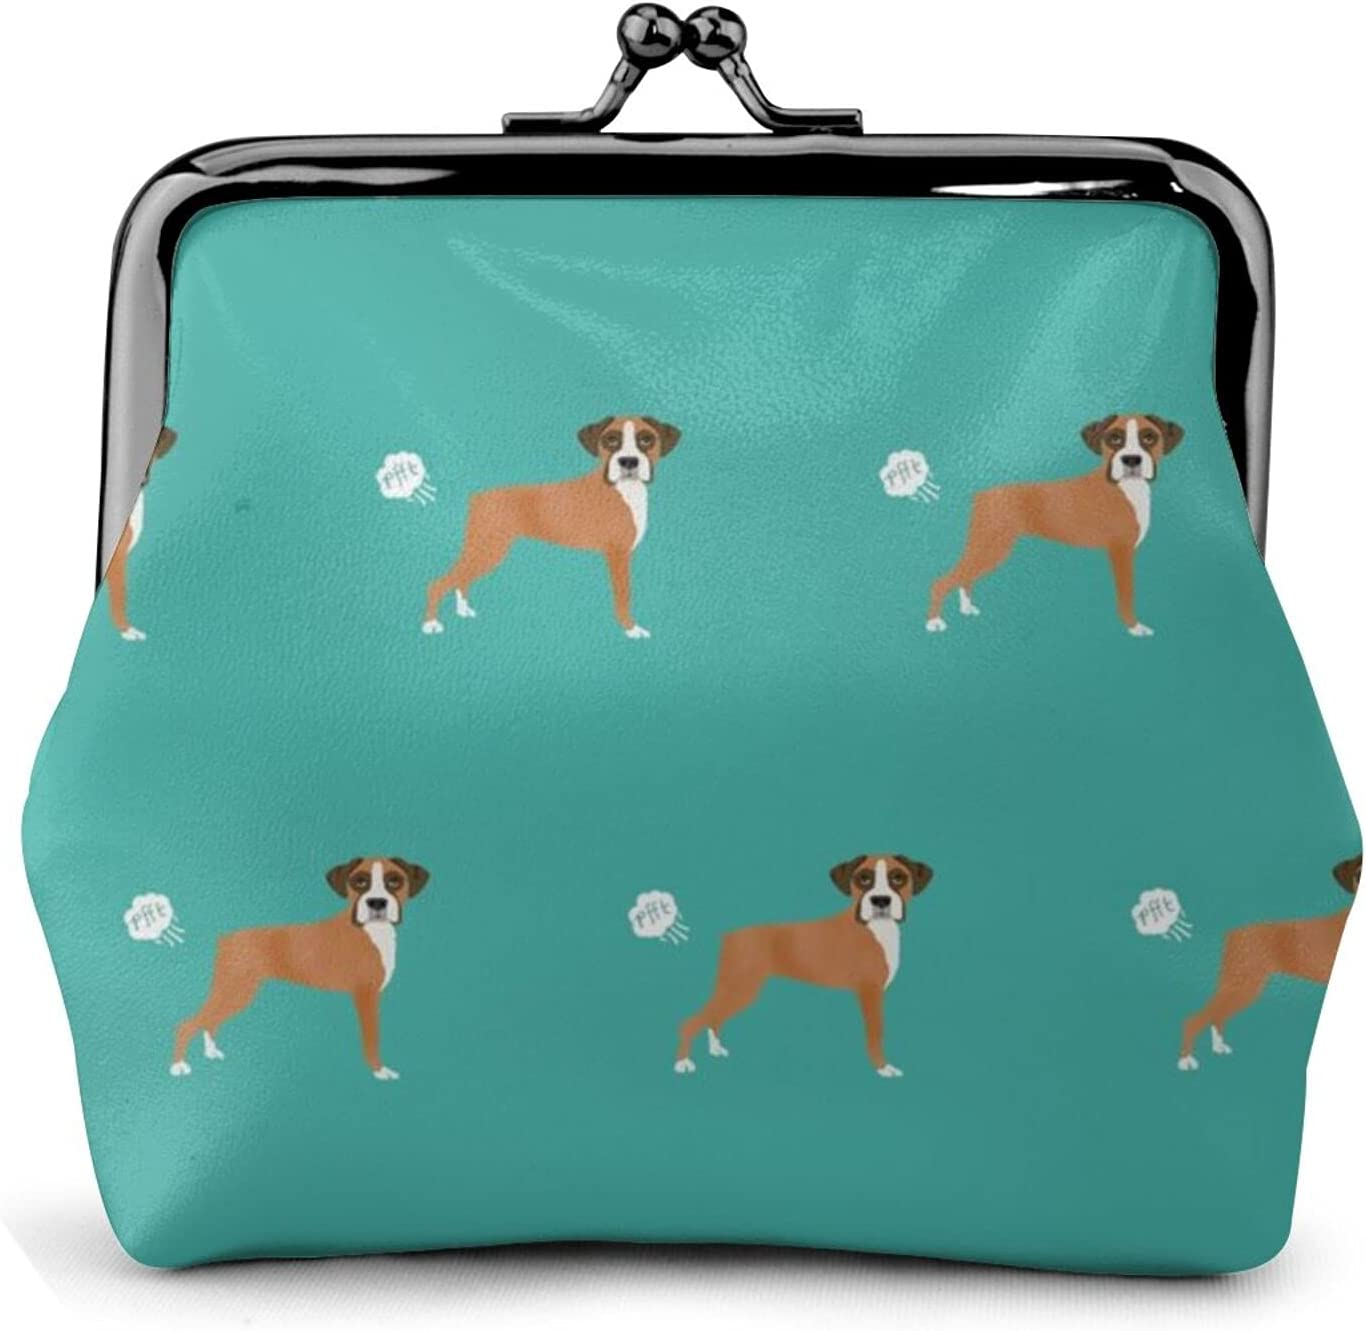 Boxer Dog Breed 1128 Coin Purse Retro Money Pouch with Kiss-lock Buckle Small Wallet for Women and Girls